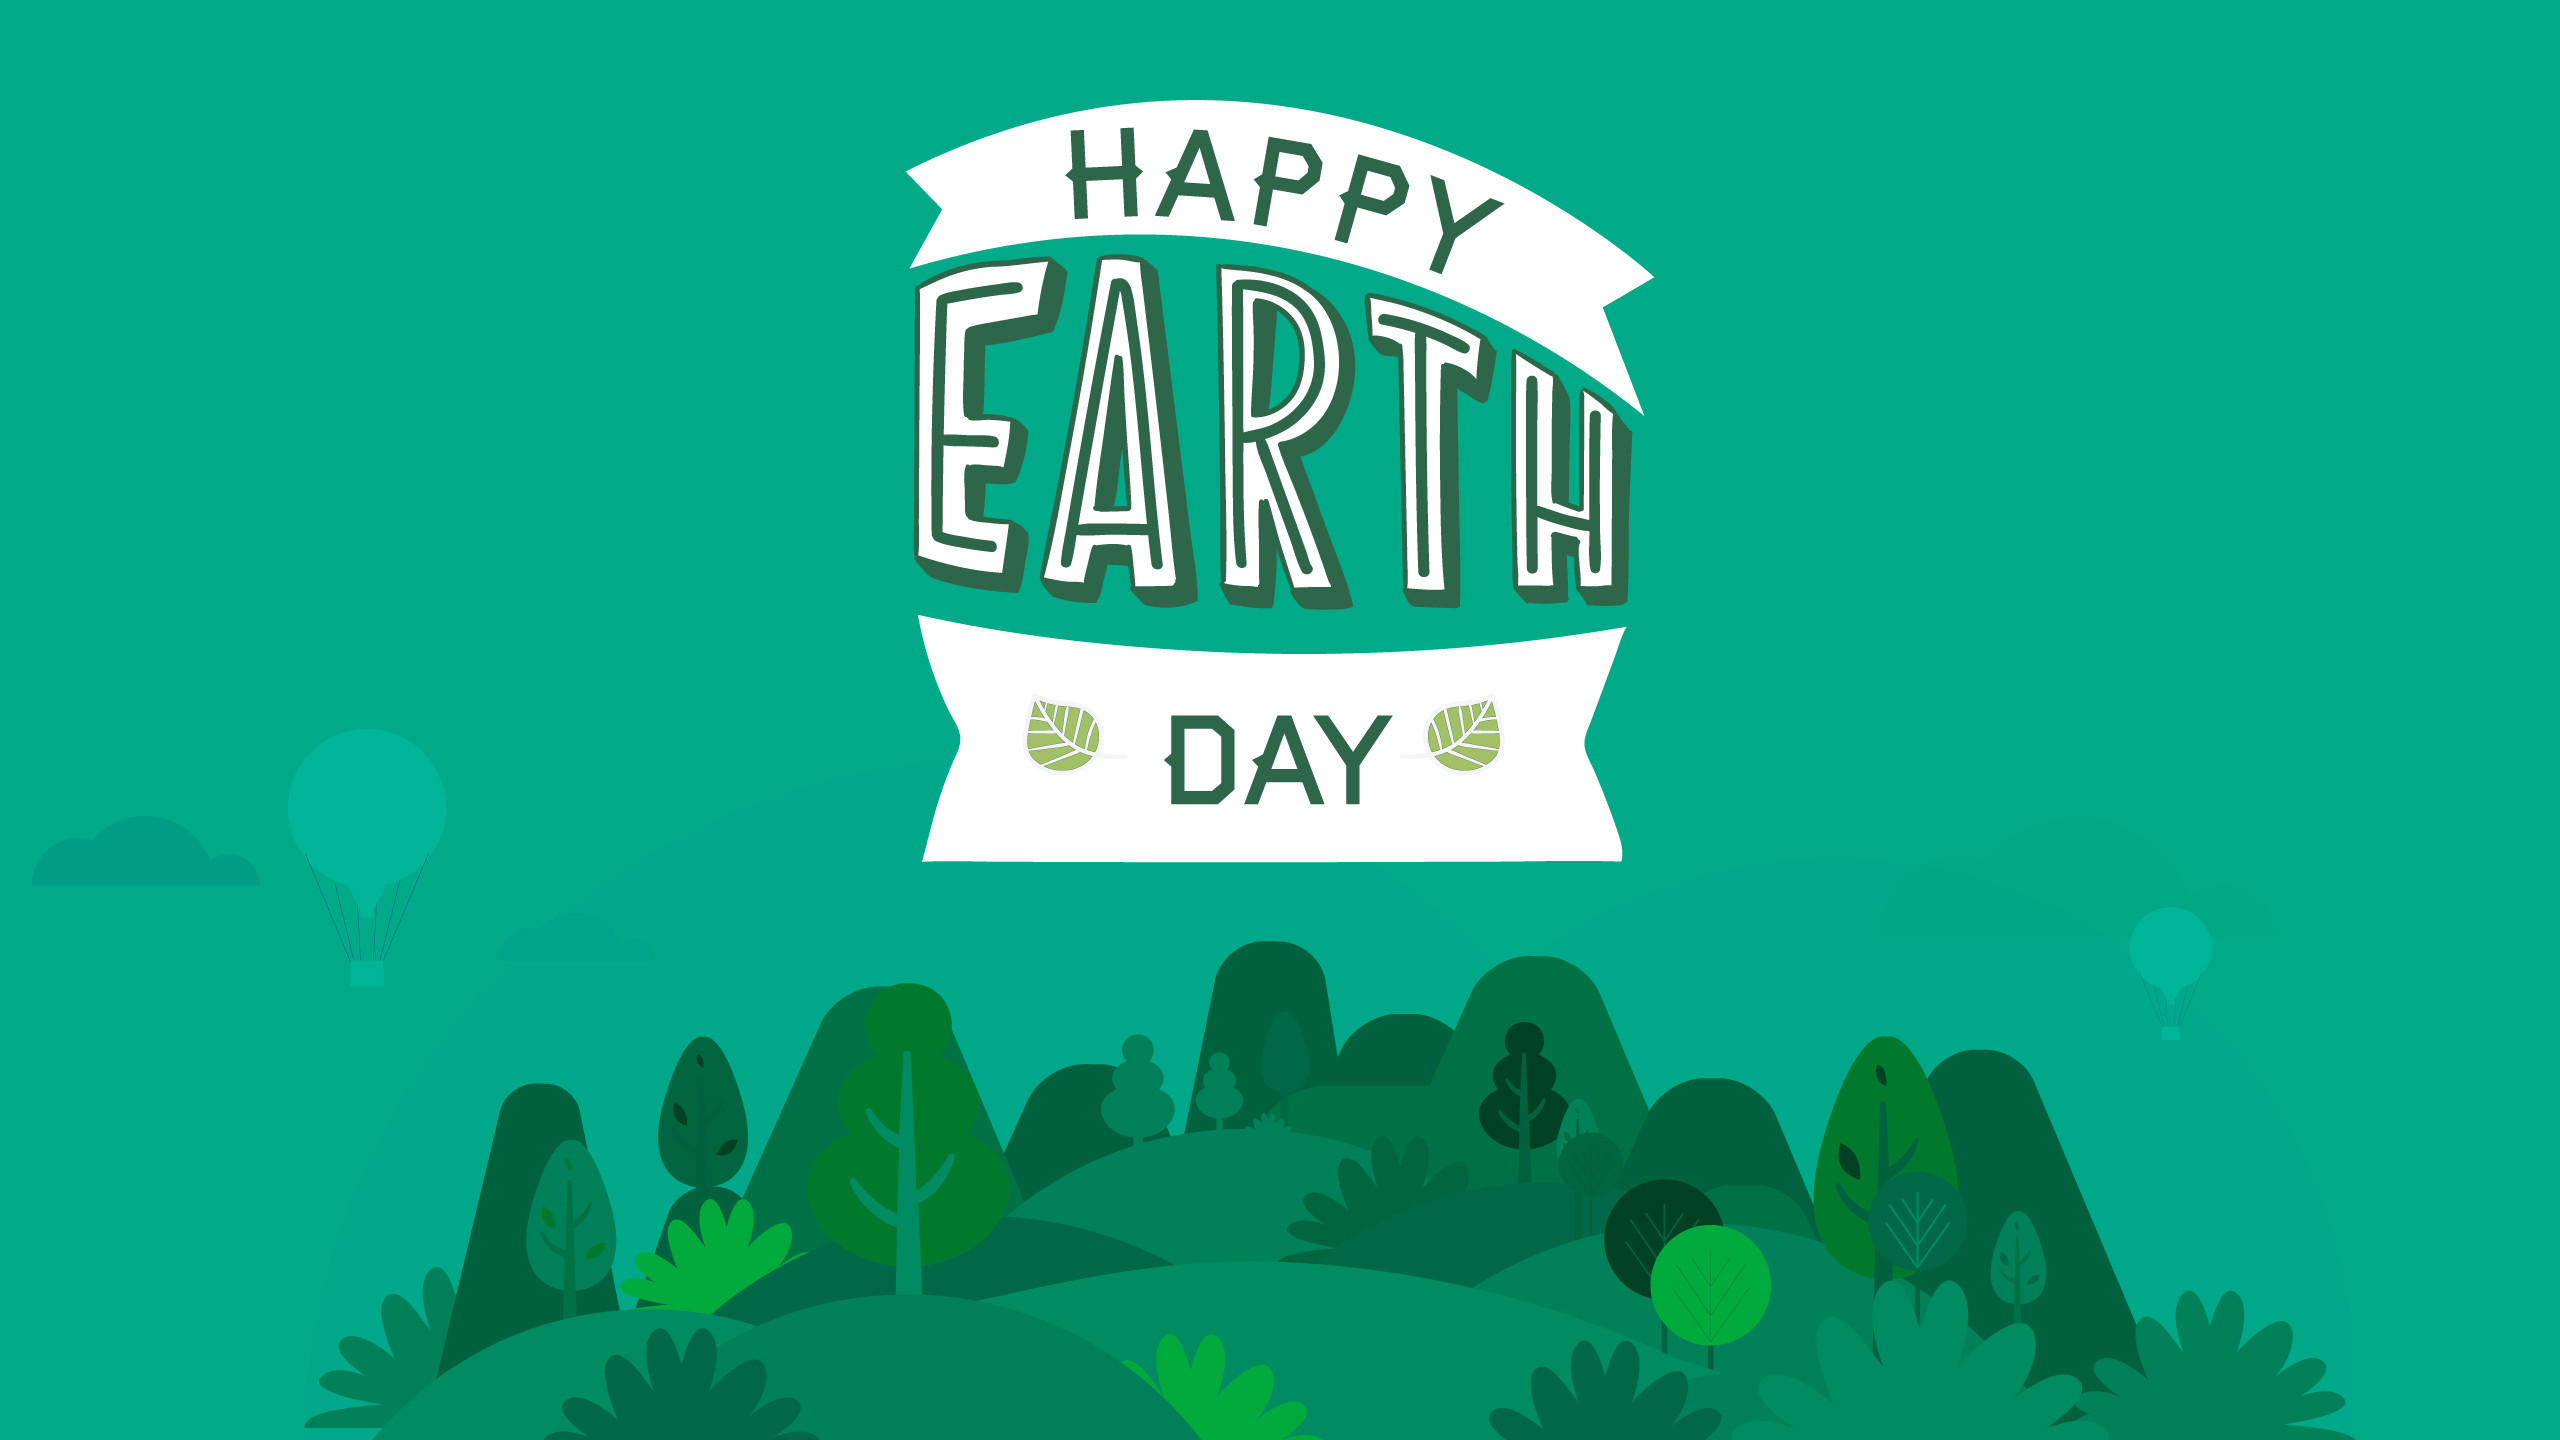 Freebie Friday Usgbc Wallpaper For Earth Day U S Green Building